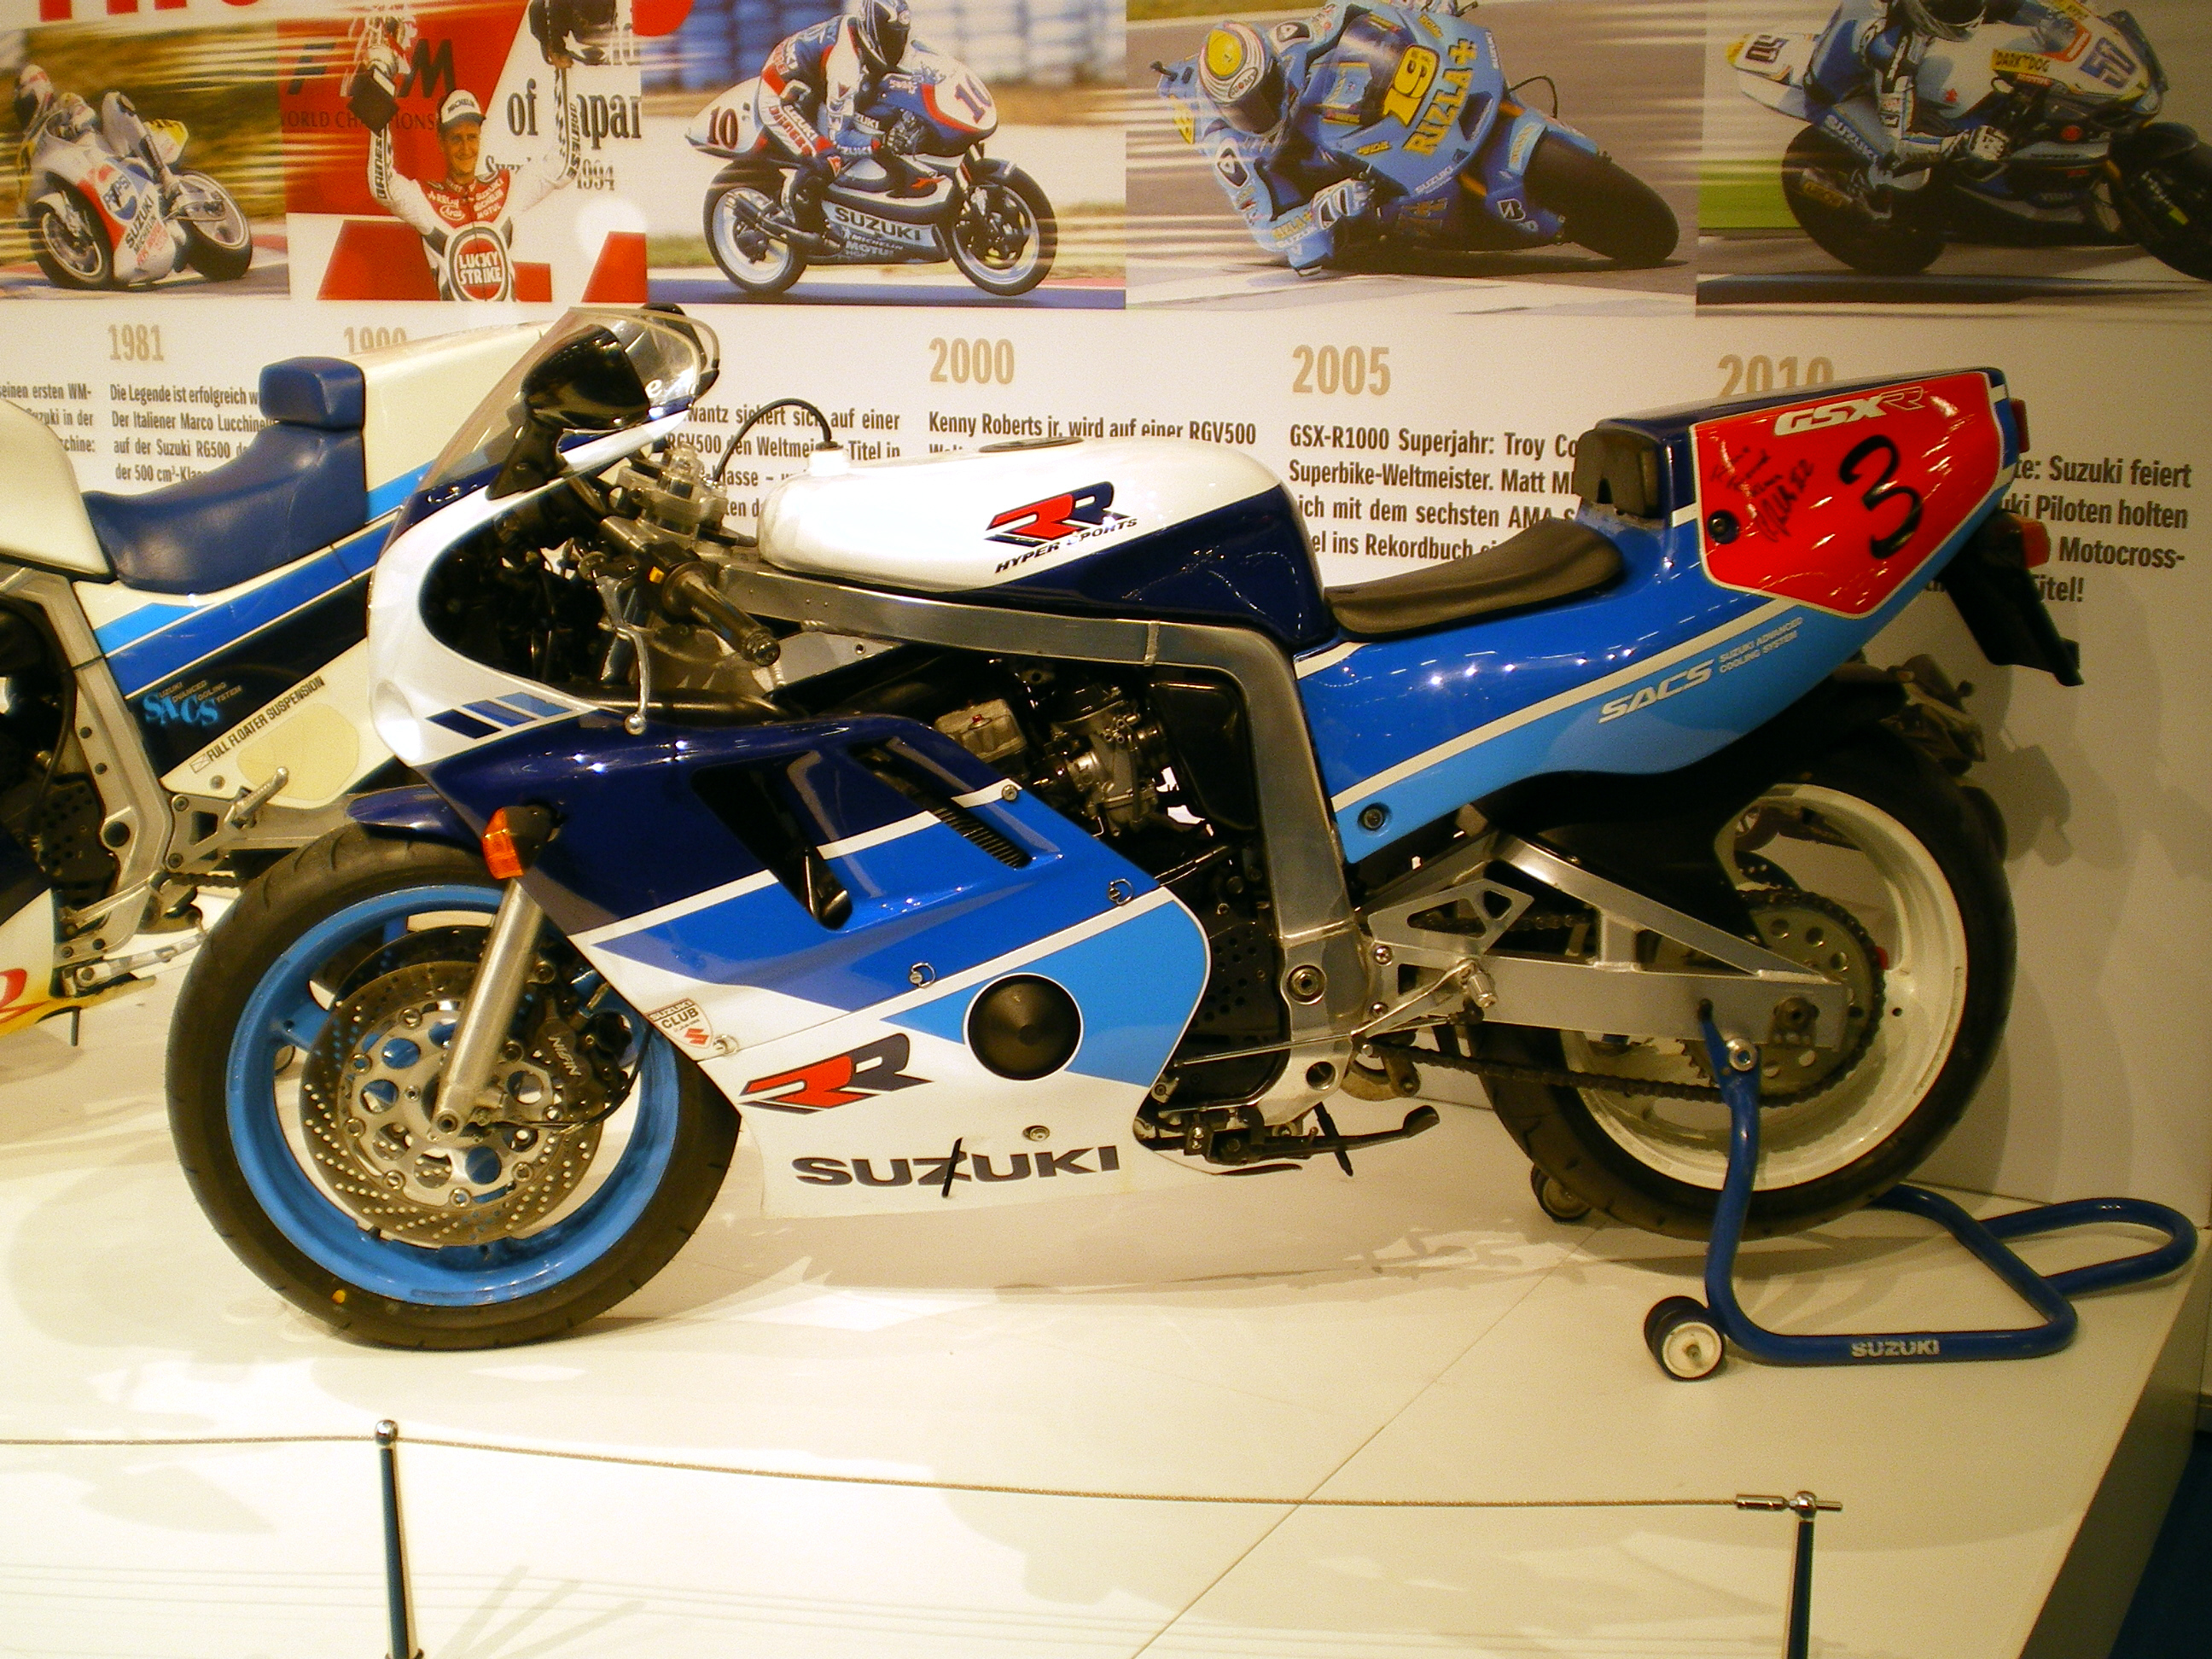 Suzuki Gixxer  For Sale In Pakistan